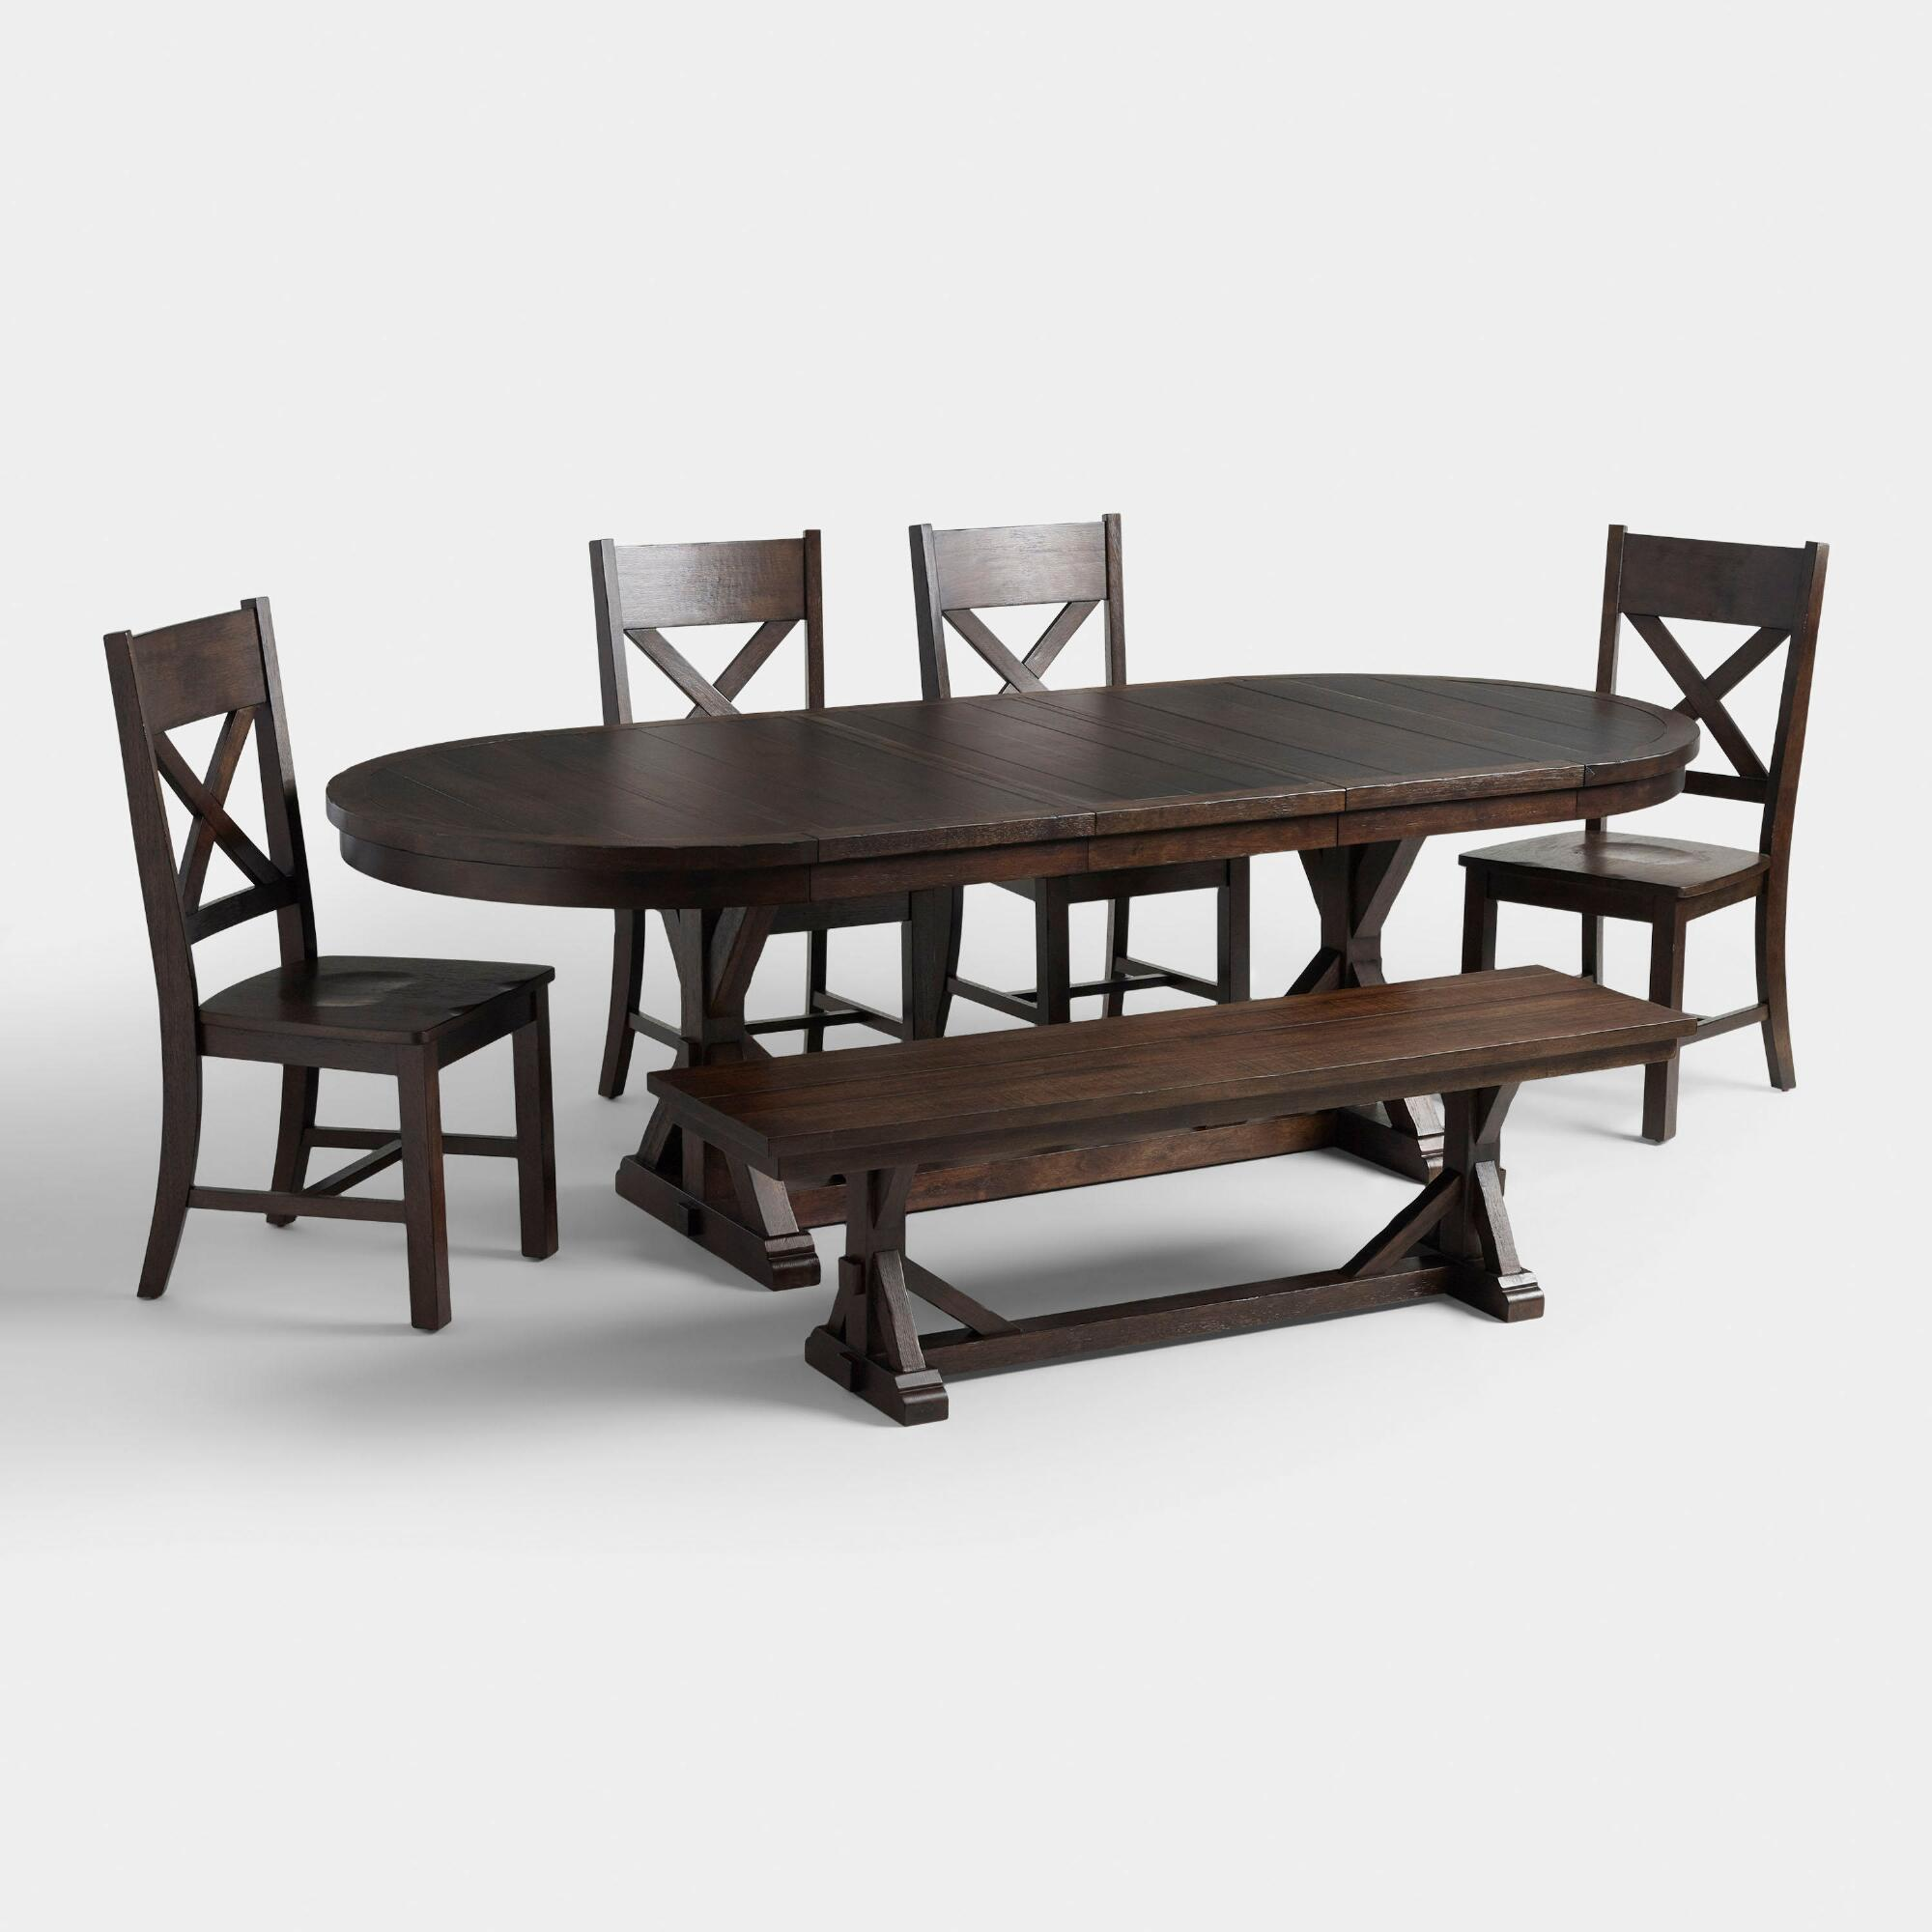 Dining Room Inexpensive Dining Room Table With Bench And: Rustic Brown Brooklynn Dining Collection